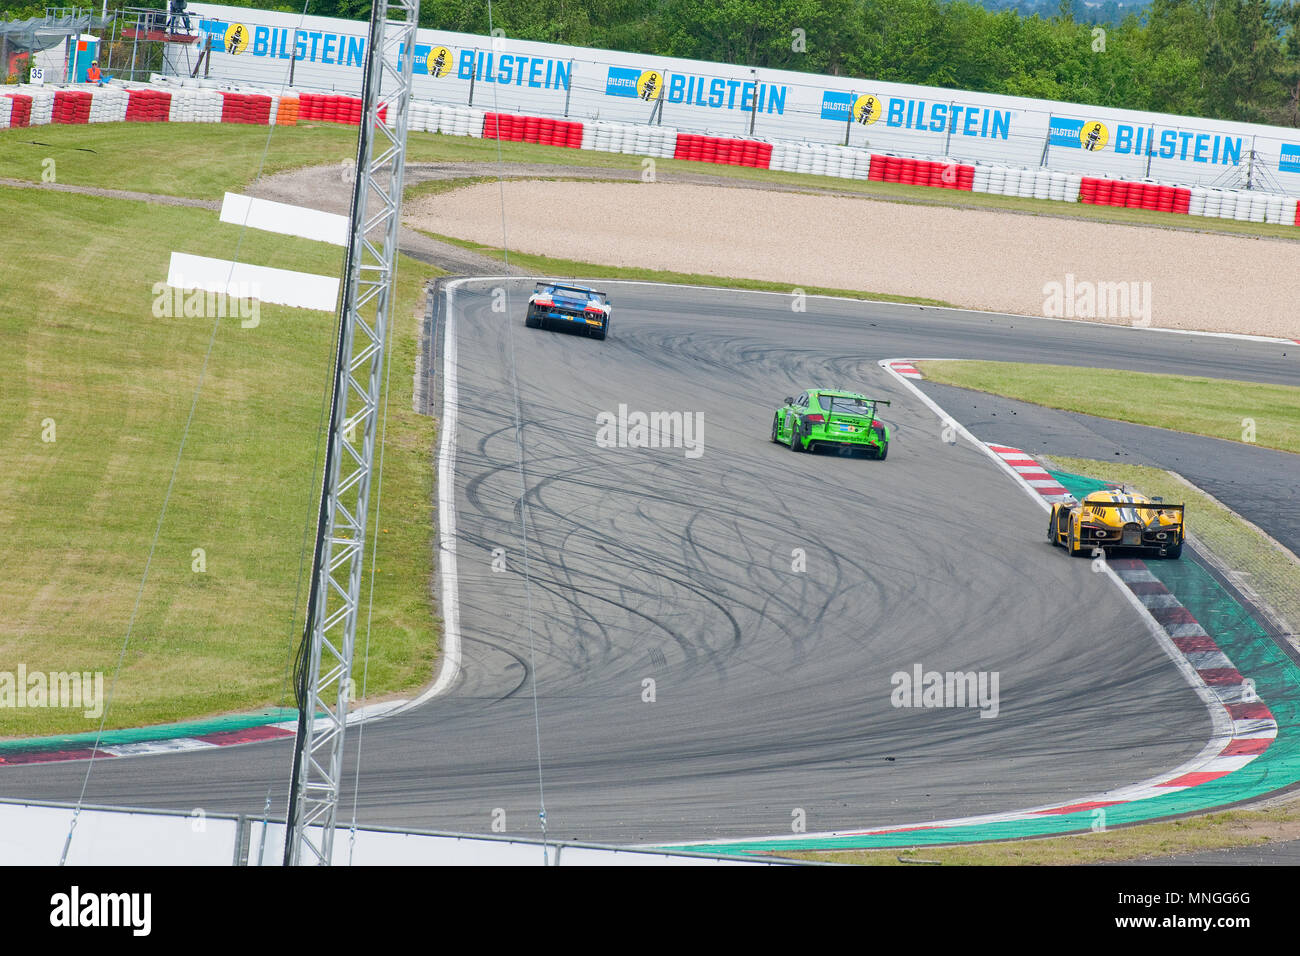 Audi R8, Porsche 911, SCG003C, Bilstein-Kurve, Nuerburgring, 24h Nuerburgring, motorsports, curves, curbes, racing, top gear, high speed, fast and fur - Stock Image